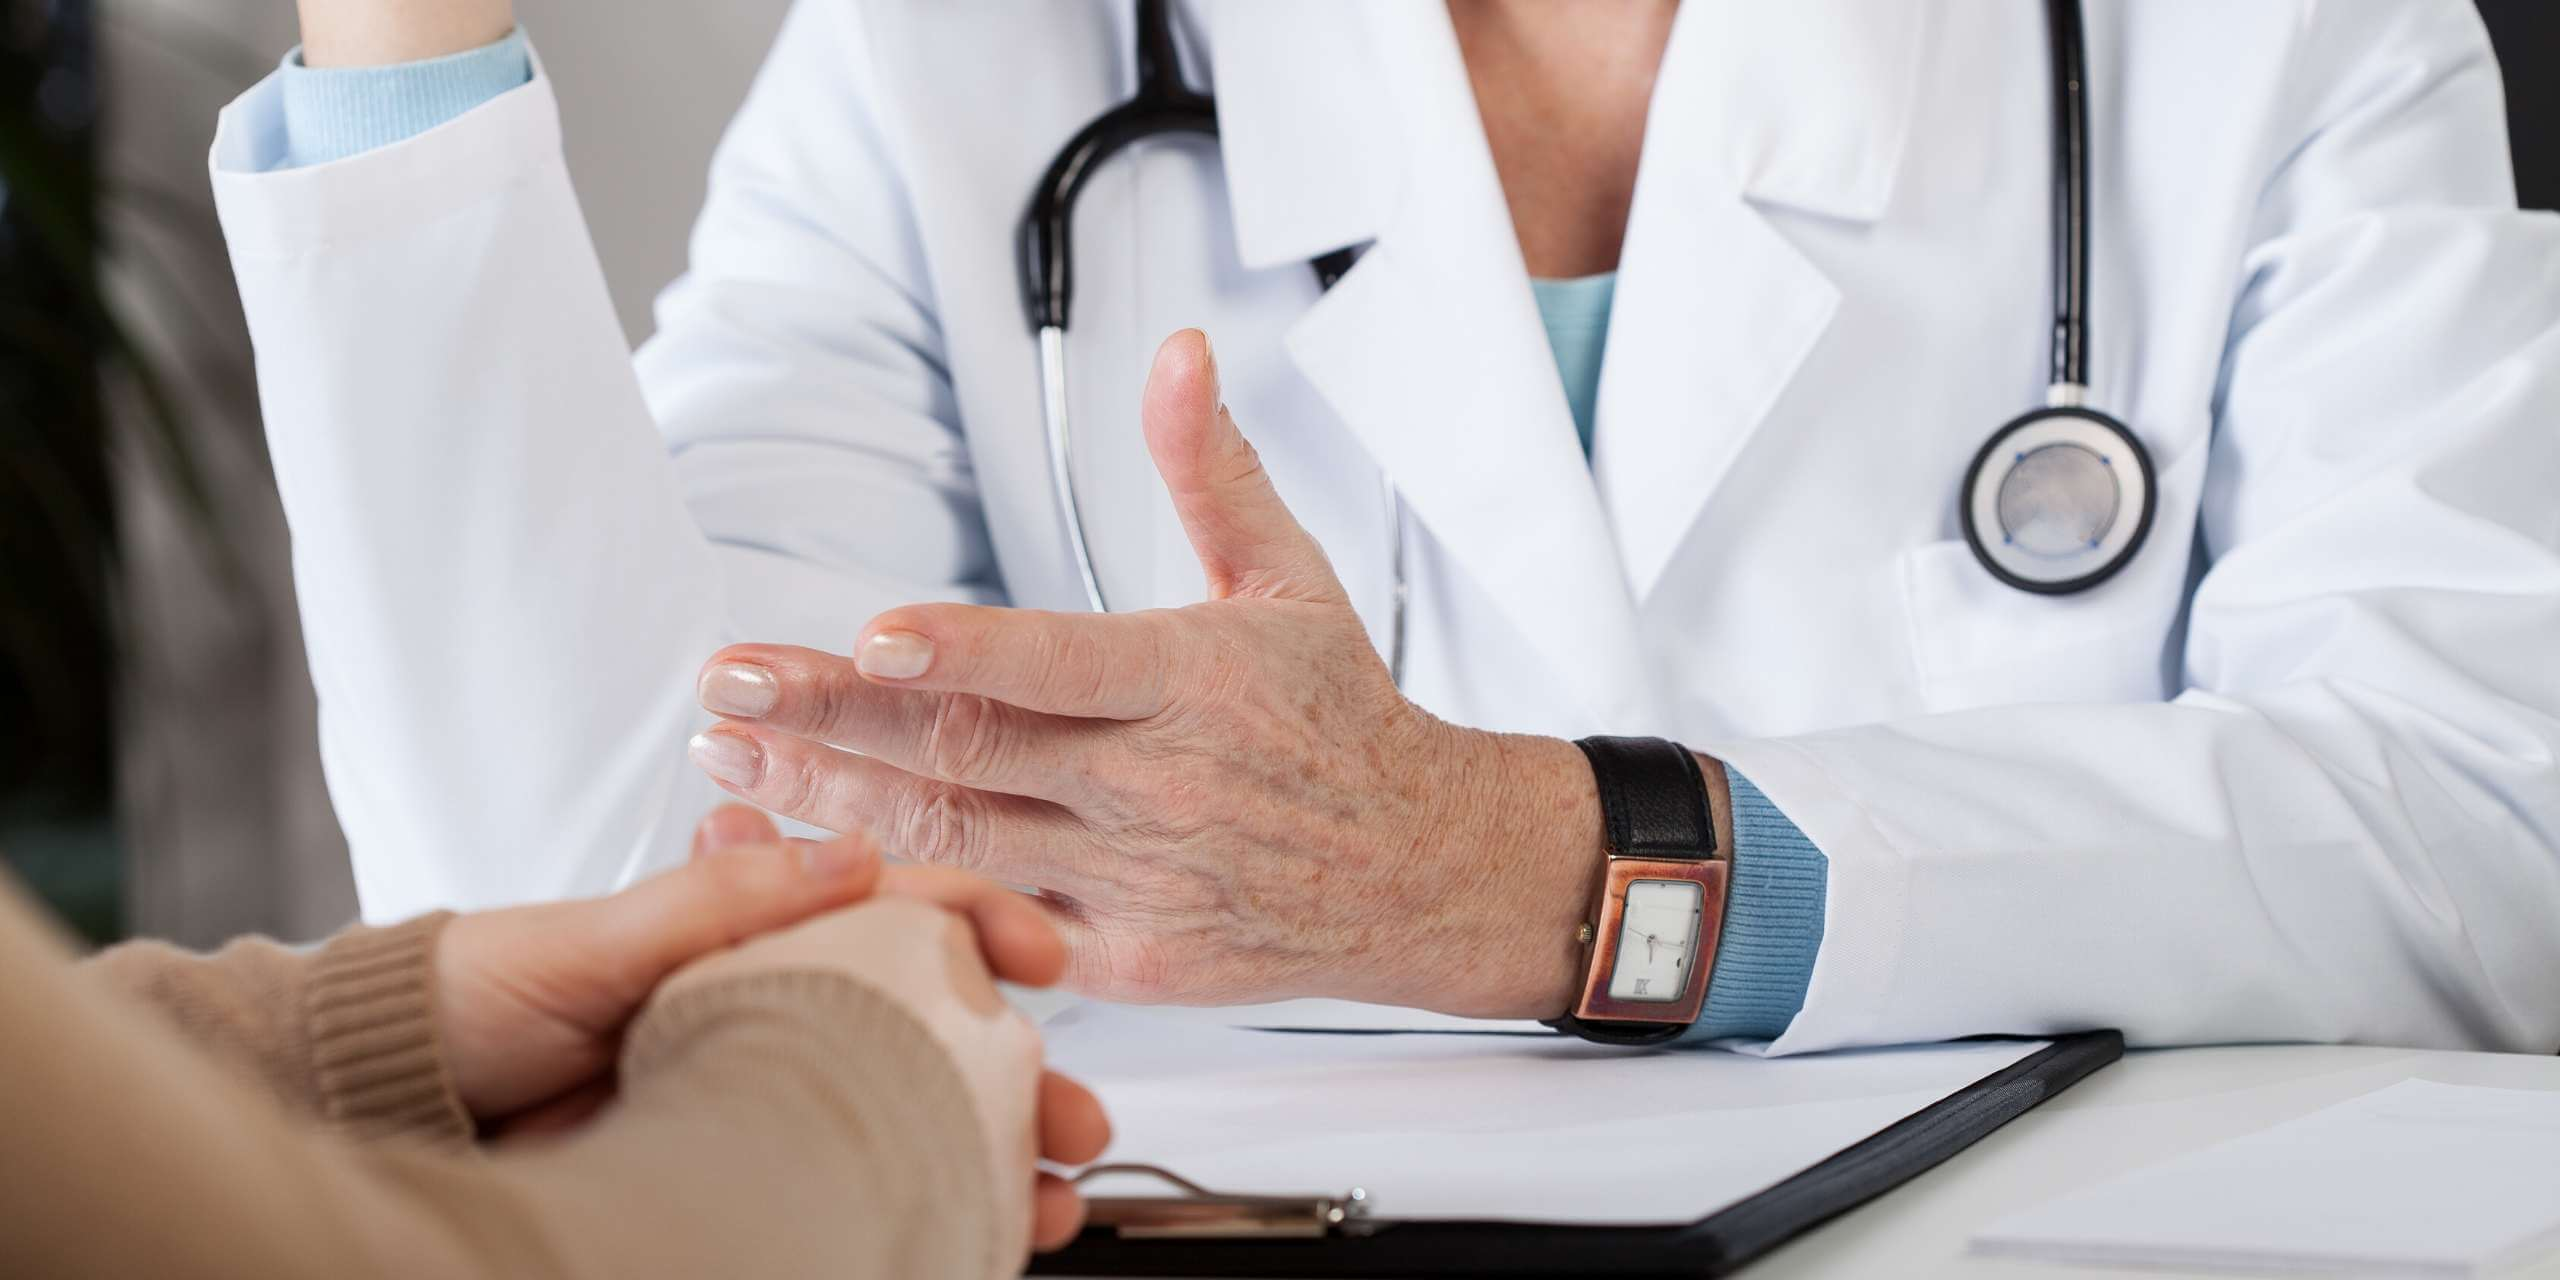 How to Get Your Doctor to Listen: Tips from a Patient Who's Been There